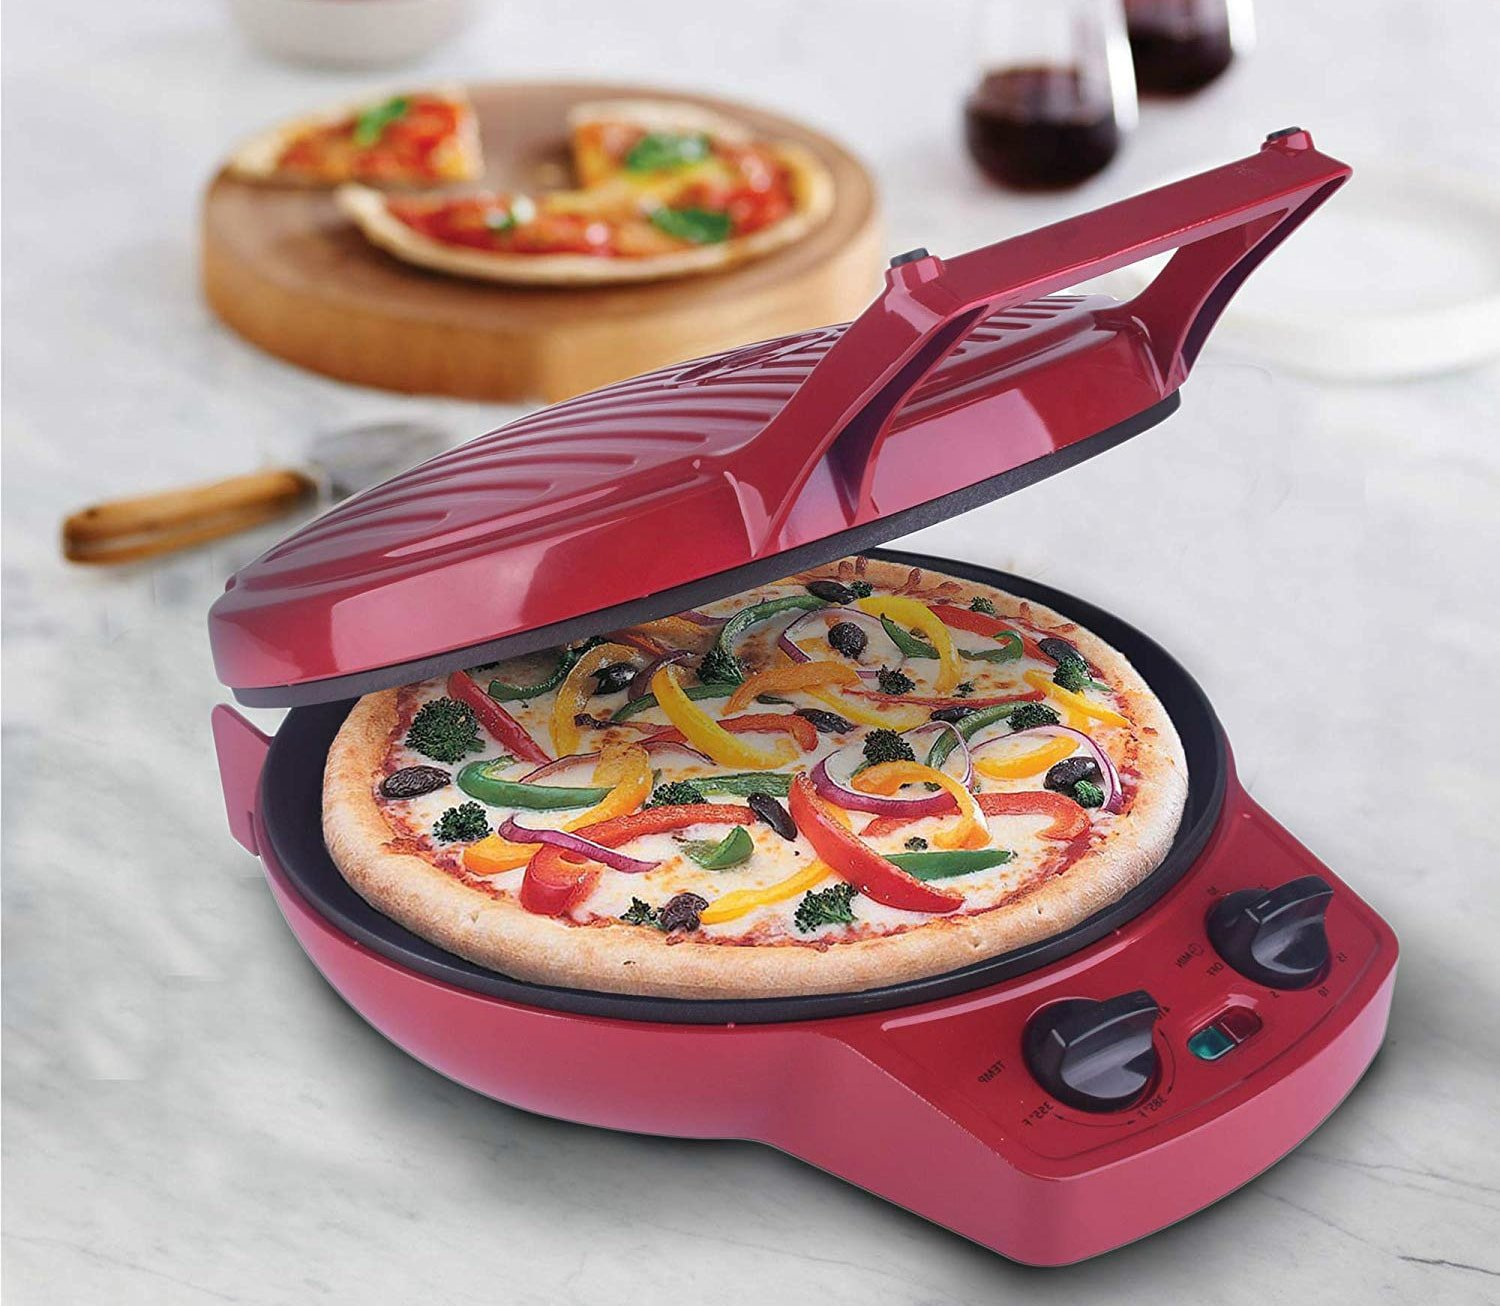 Courant Pizza Maker: A Great Tool for Pizza Enthusiasts